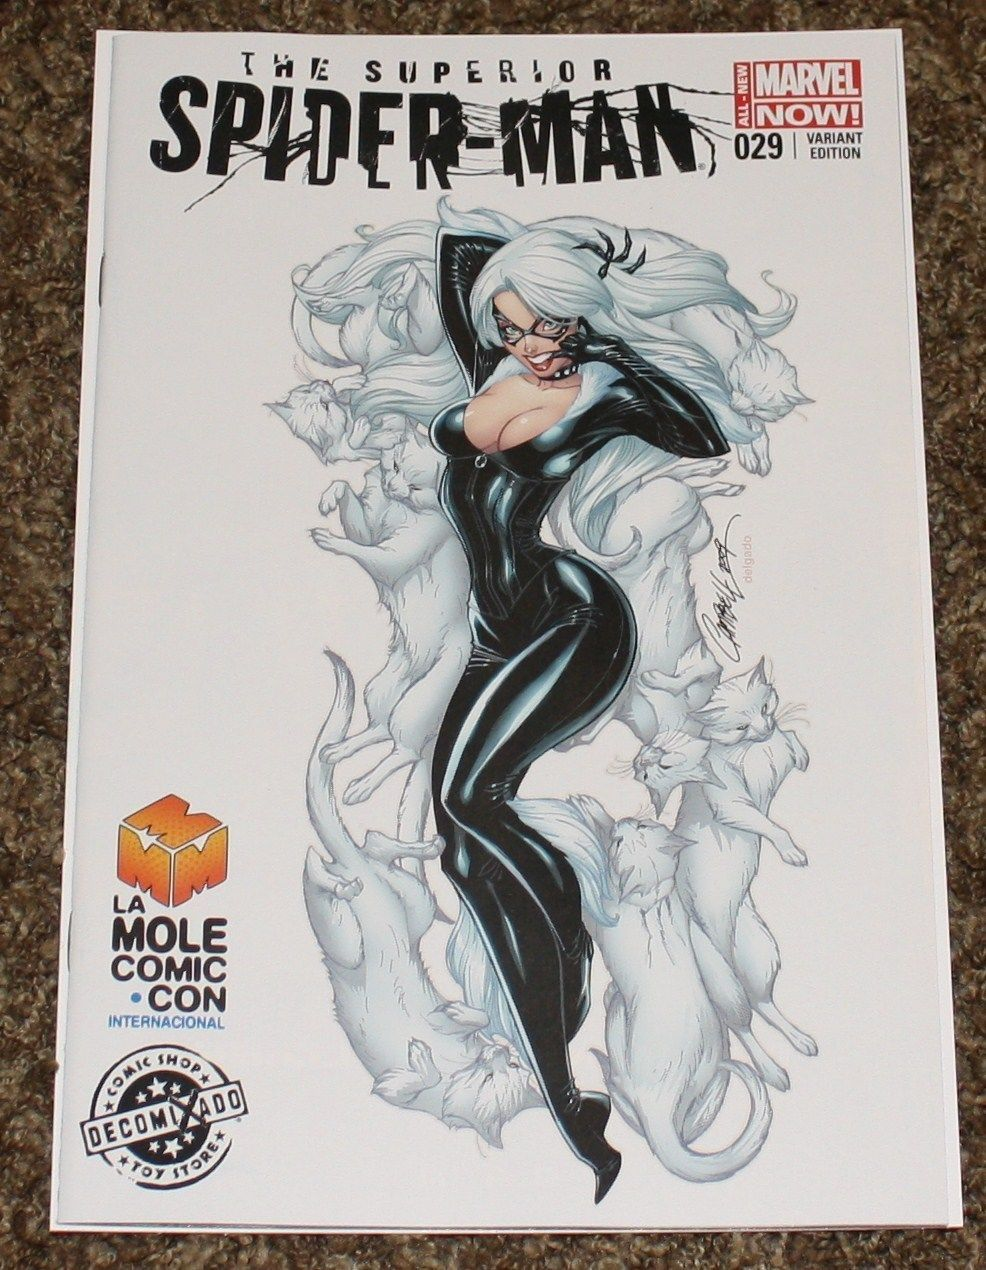 AMAZING SPIDER-MAN #29 J. SCOTT CAMPBELL BLACK CAT EXCLUSIVE LA MOLE CONVENTION VARIANT VIRGIN VARIANT Marvel Comics Spider-man Venom East Side Comics CGC